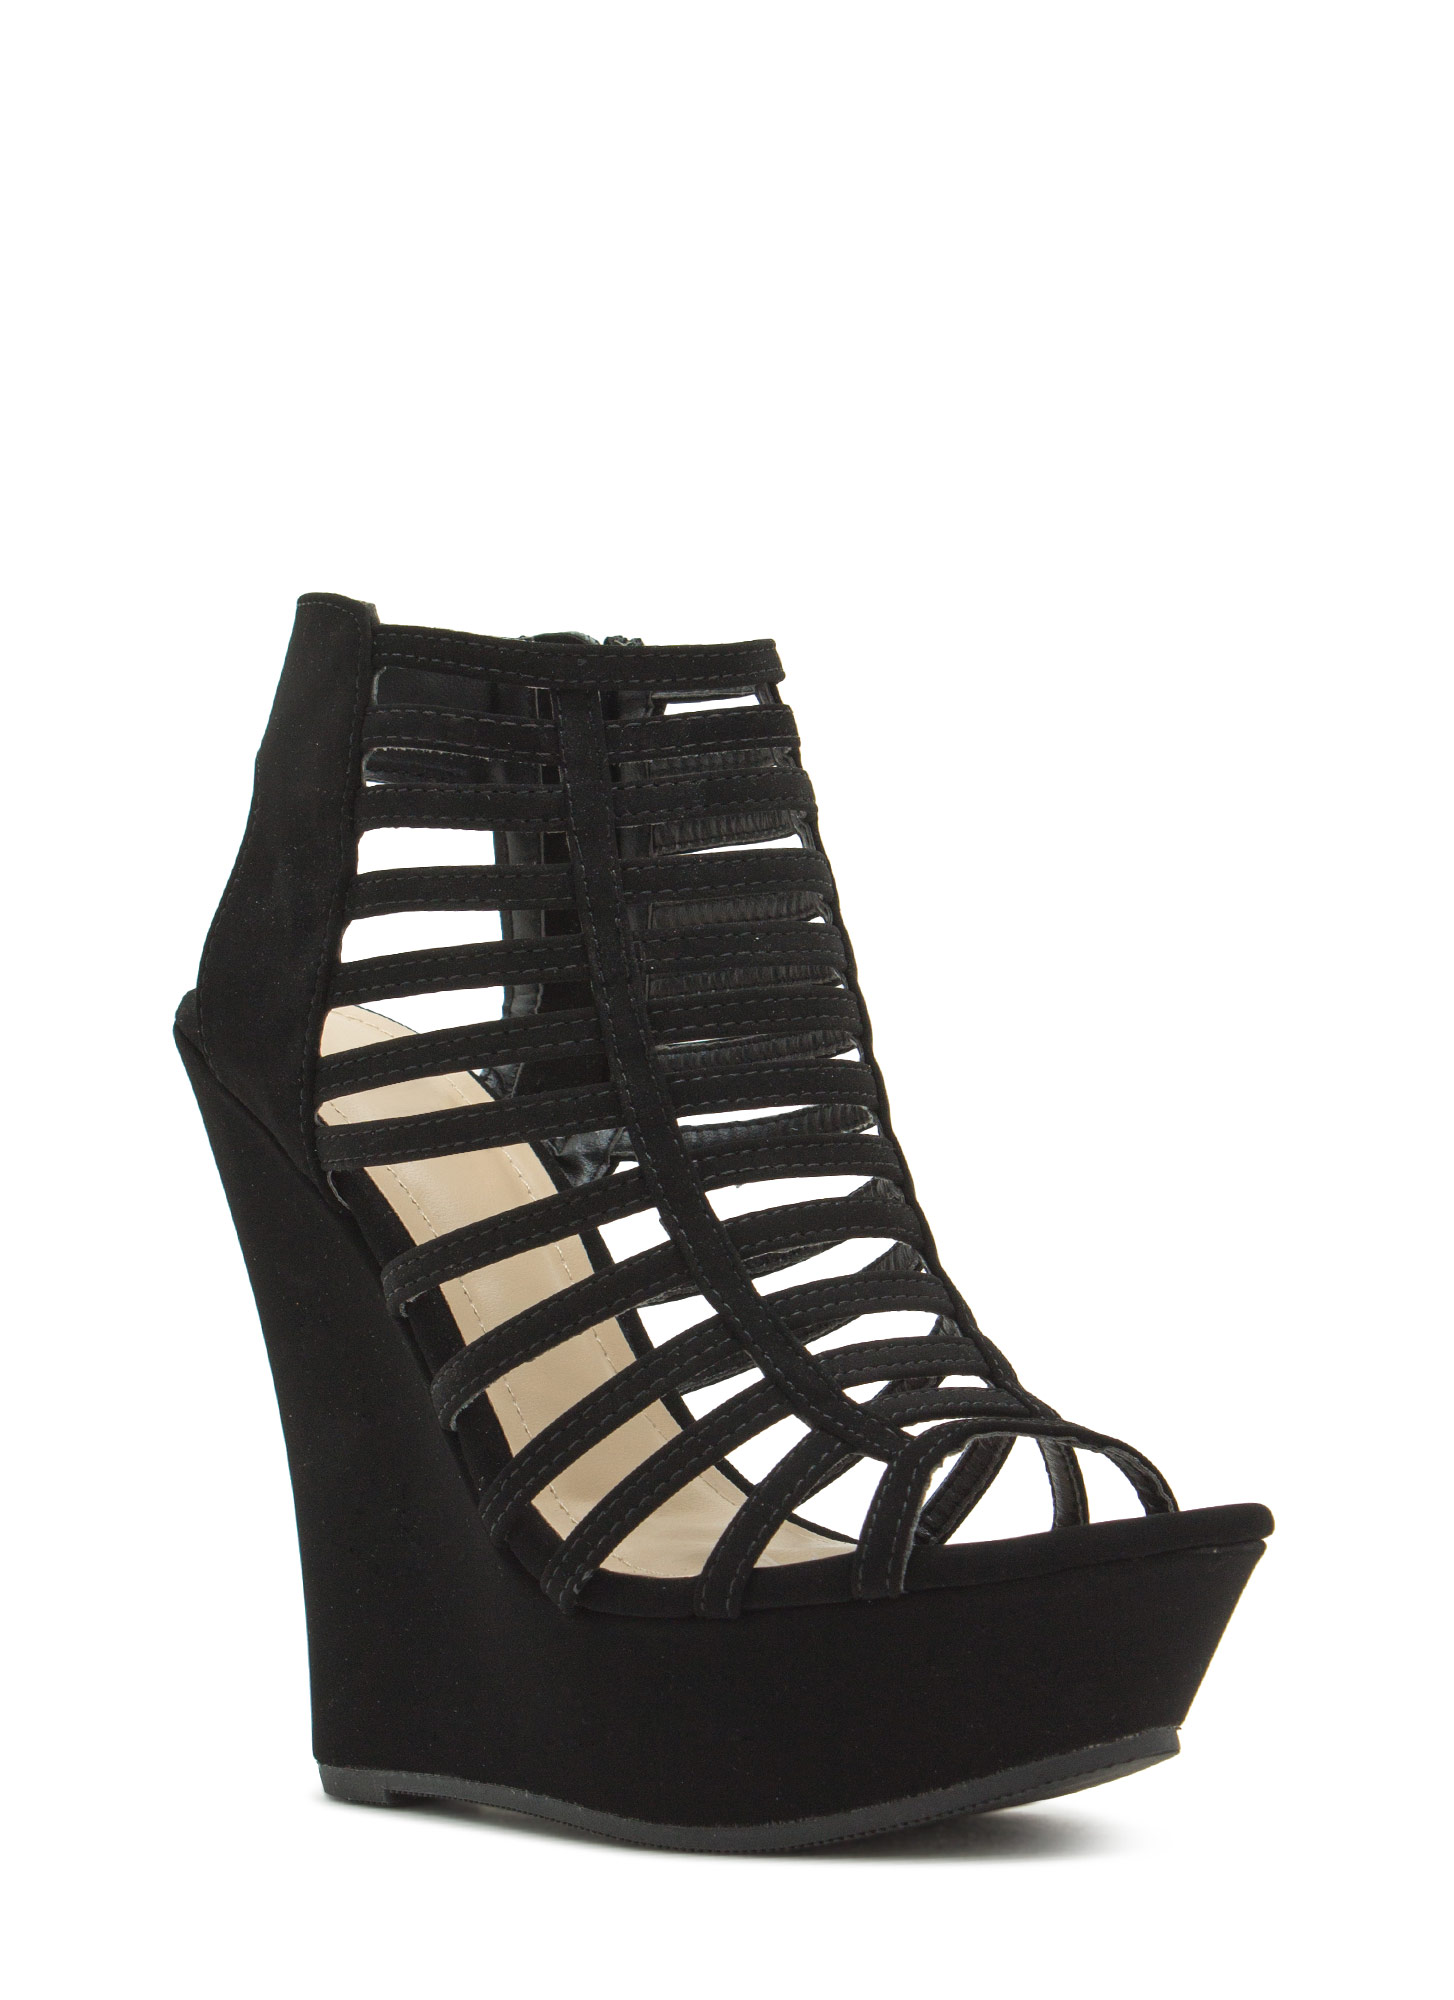 Slit Vision Platform Wedges BLACK